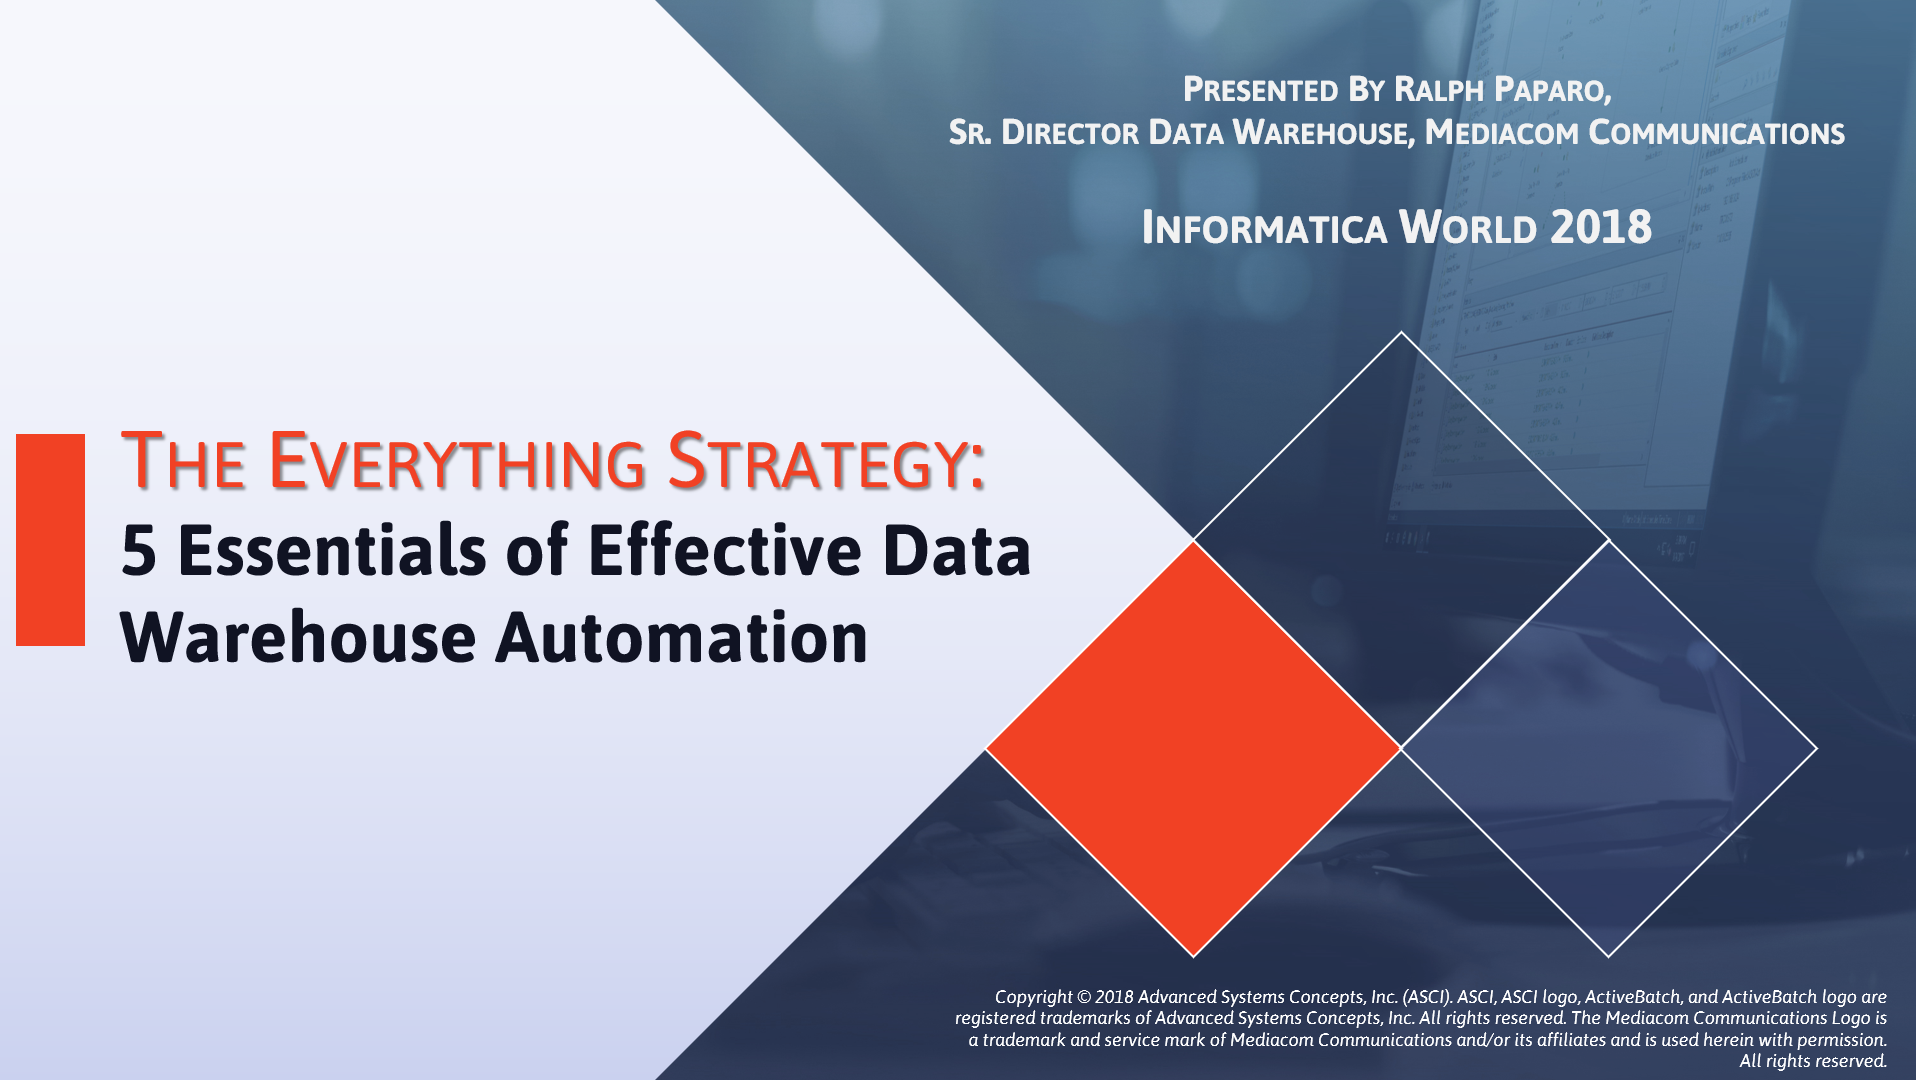 Data-Warehouse-IT-Automation-Mediacom